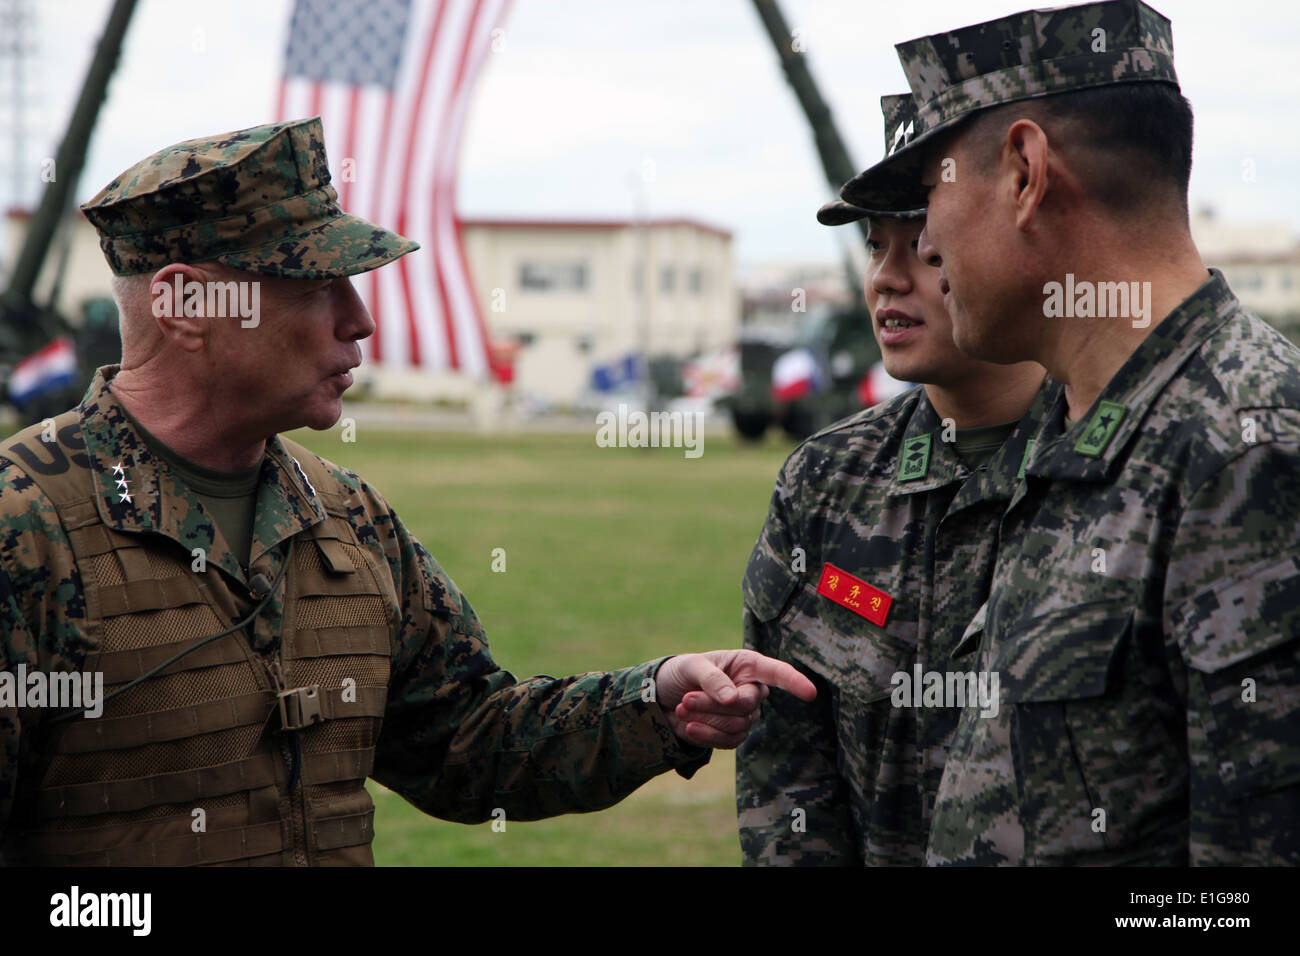 U.S. Marine Corps Lt. Gen. Kenneth J. Glueck, left, speaks with Korean service members before a change of command Stock Photo